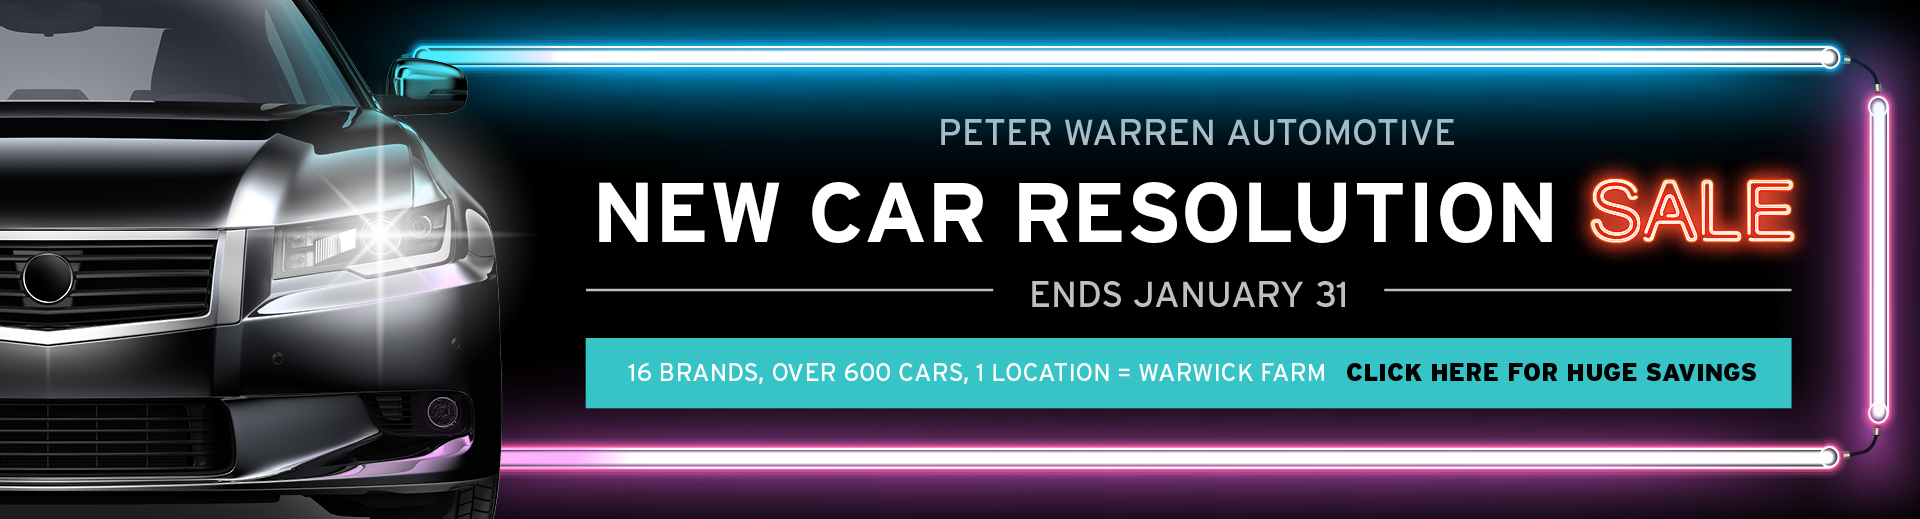 Peter Warren Automotive - New Car Resolution Sale